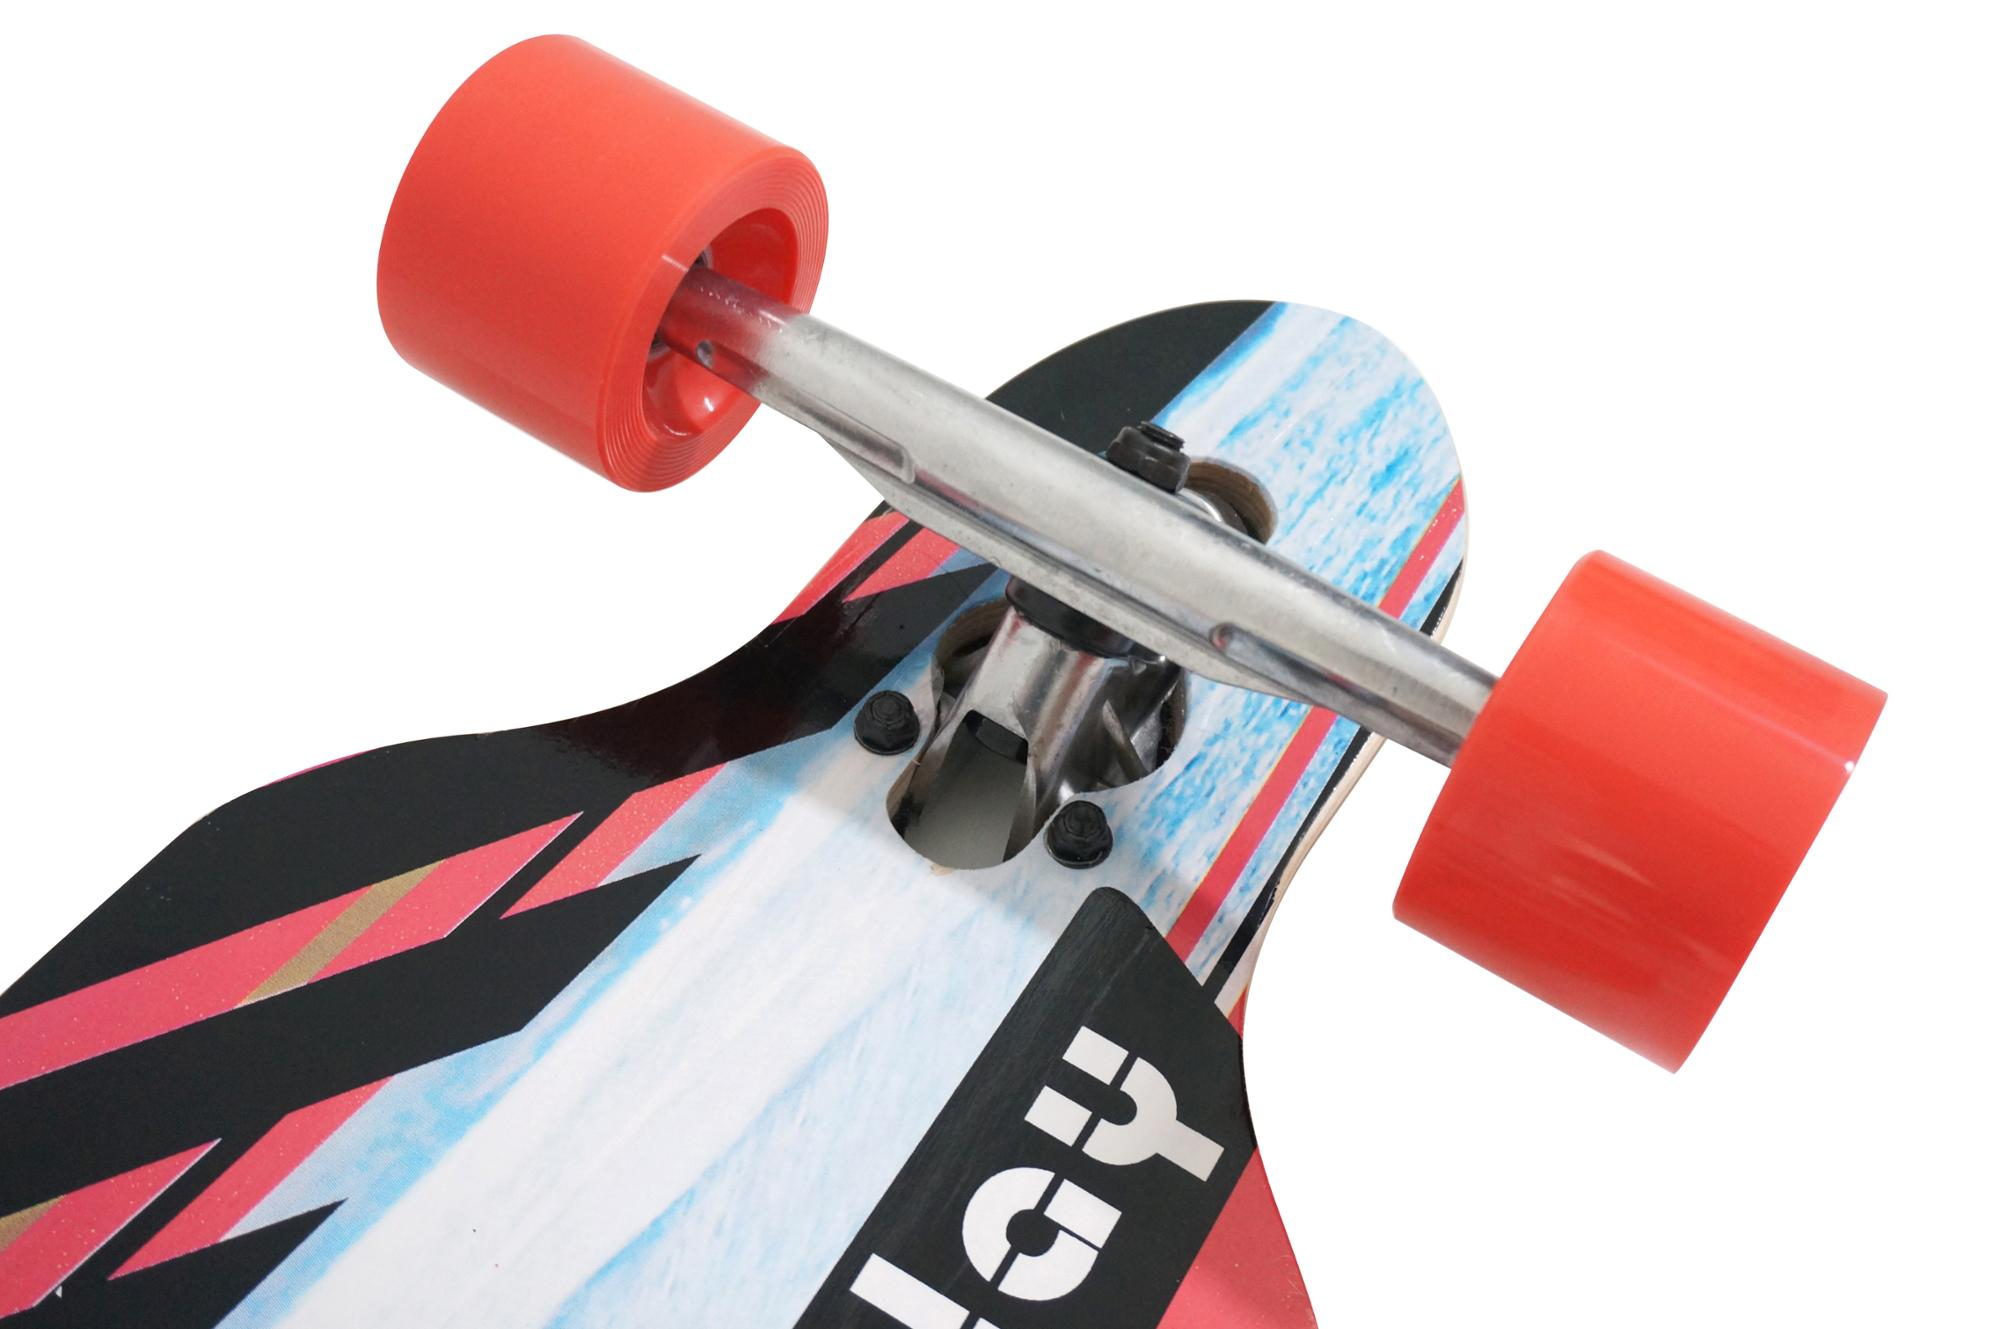 Fashion design Chinese esdoornhout lange board kids professionele houten skateboard